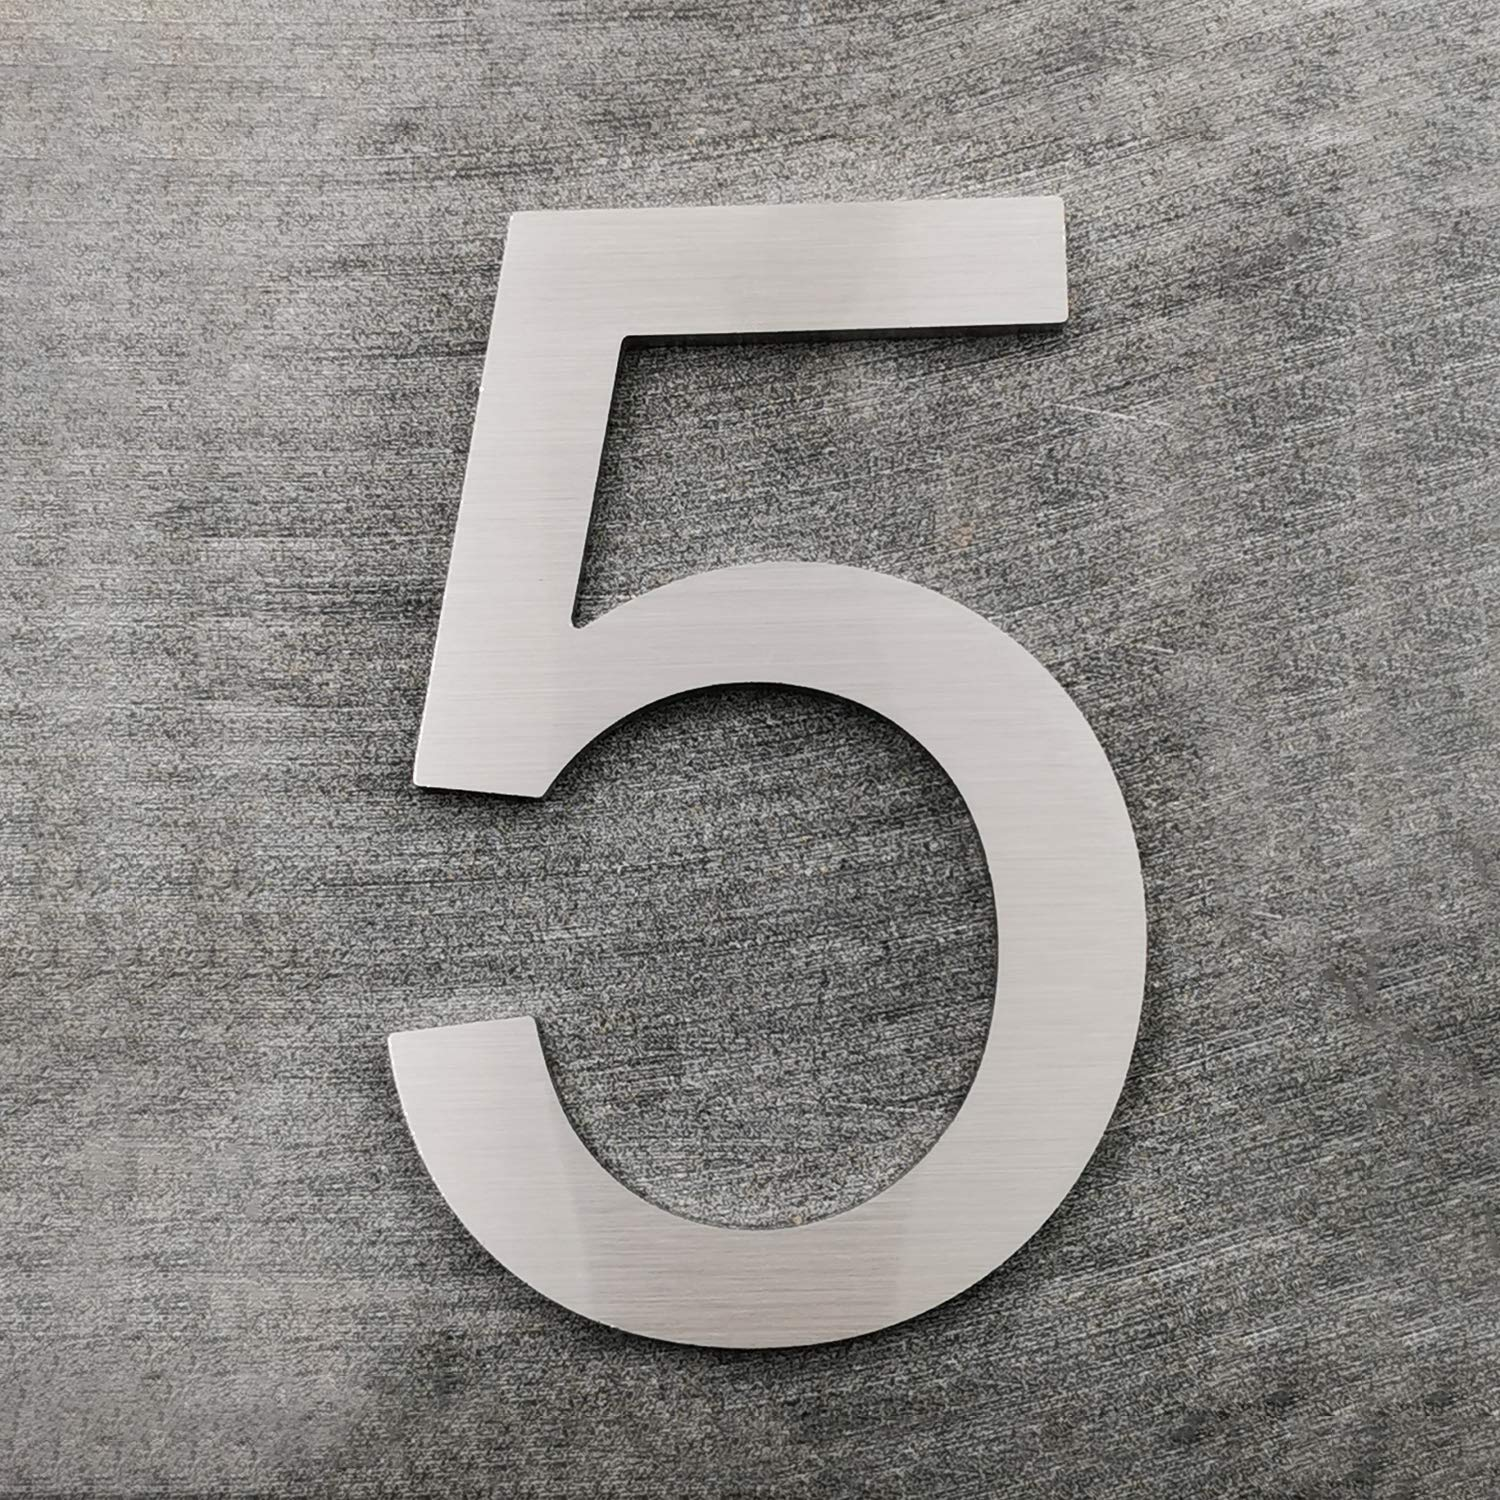 Number 0 Cobata Modern House Numbers-6 Inch Solid Stainless Steel Street Address Number Silver Elegant Floating Appearance//Easy to Install